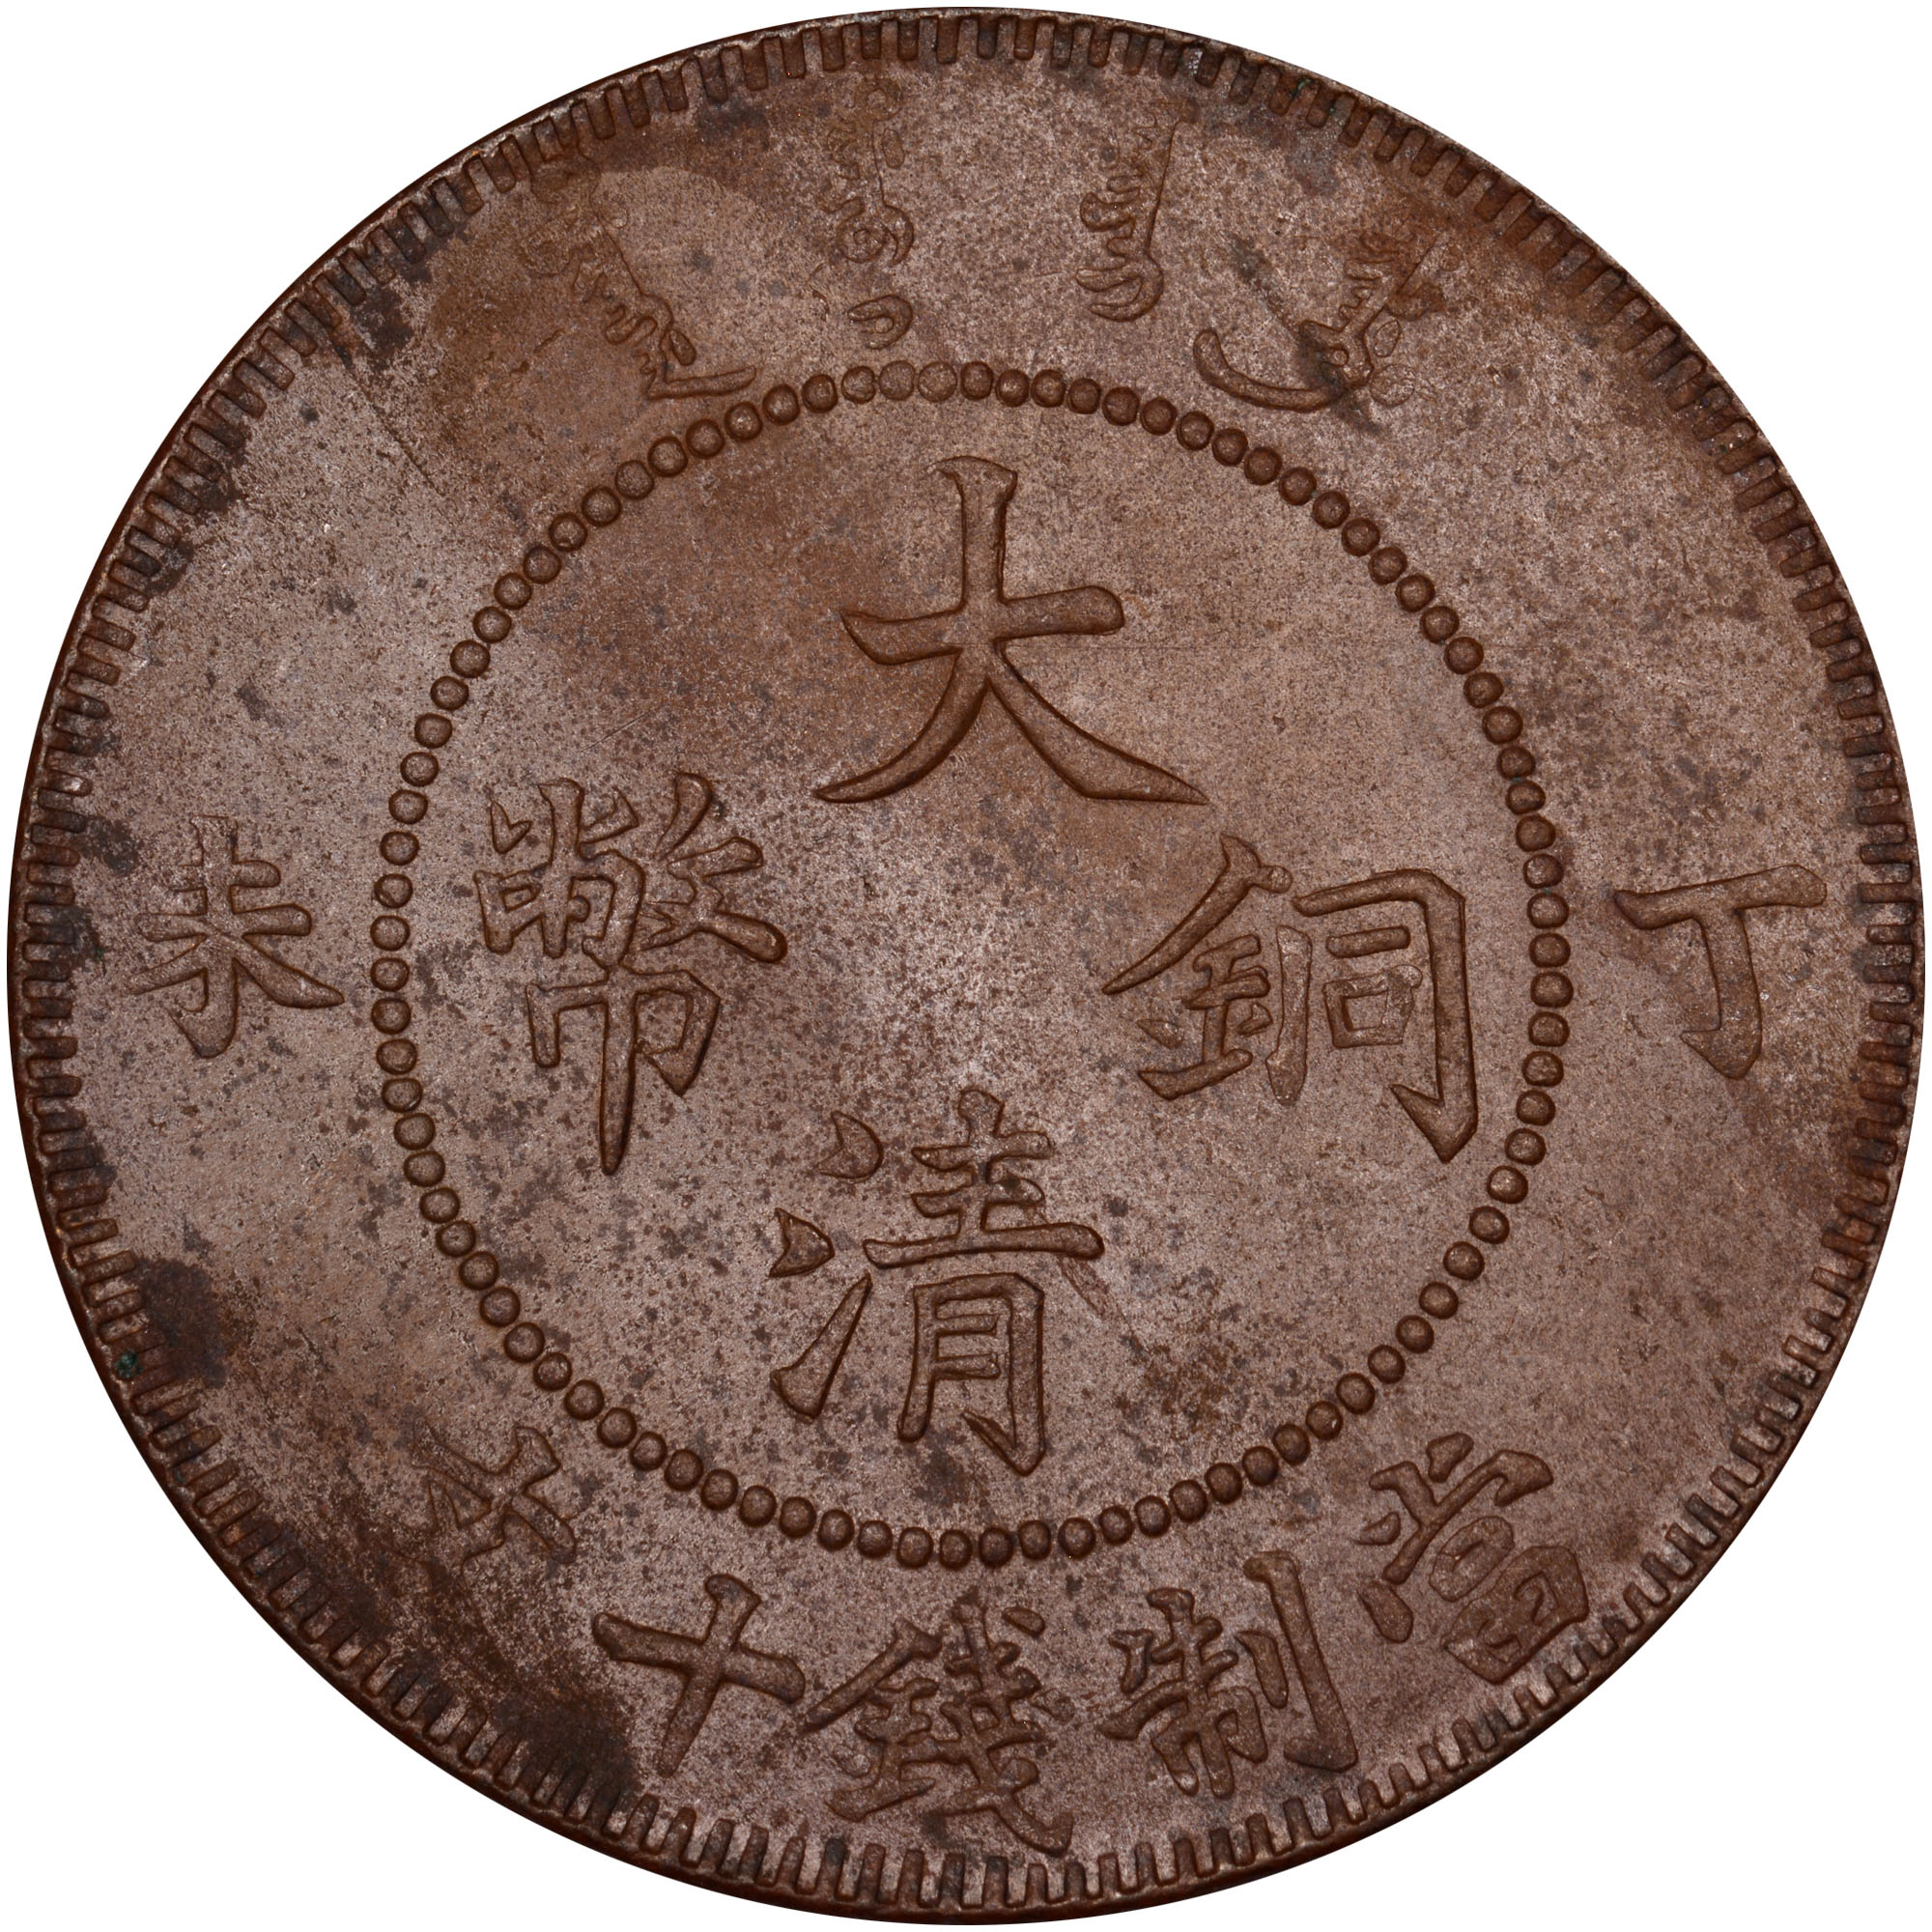 1907 China EMPIRE 10 Cash obverse